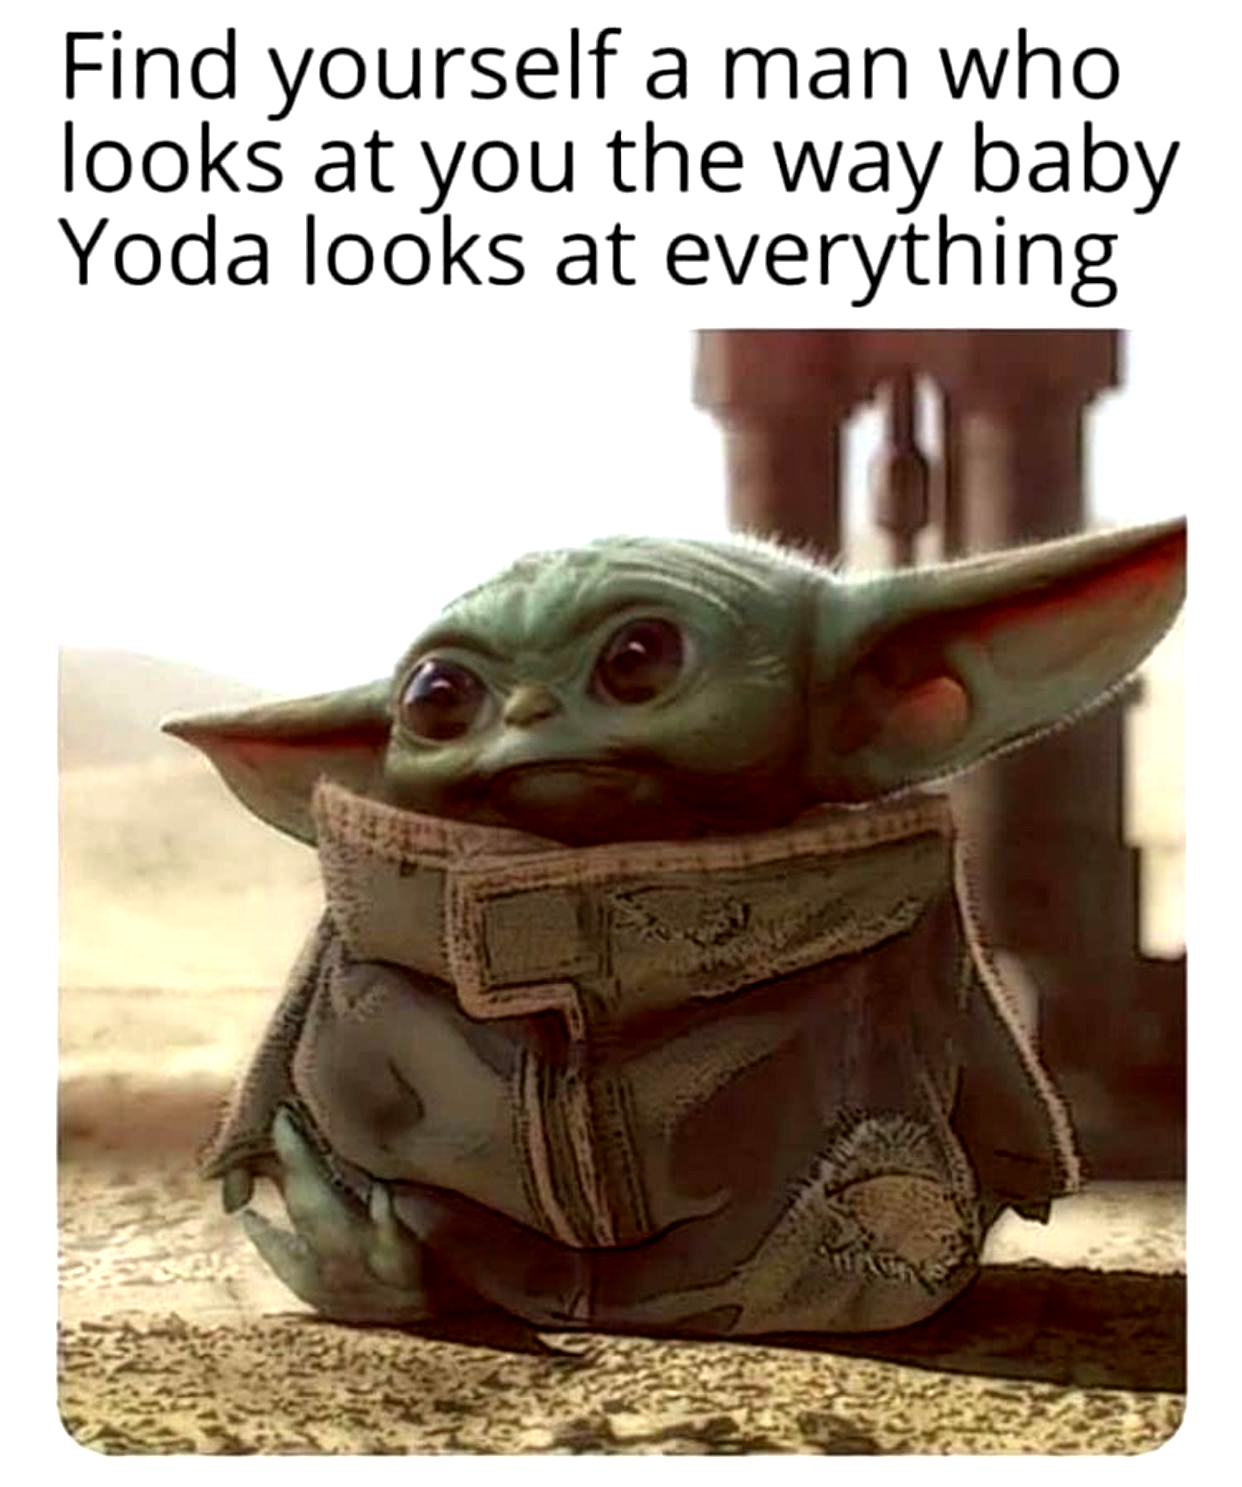 Pin By Chrisinde Pereira On Funny In 2020 Yoda Meme Funny Memes Funny Relatable Memes